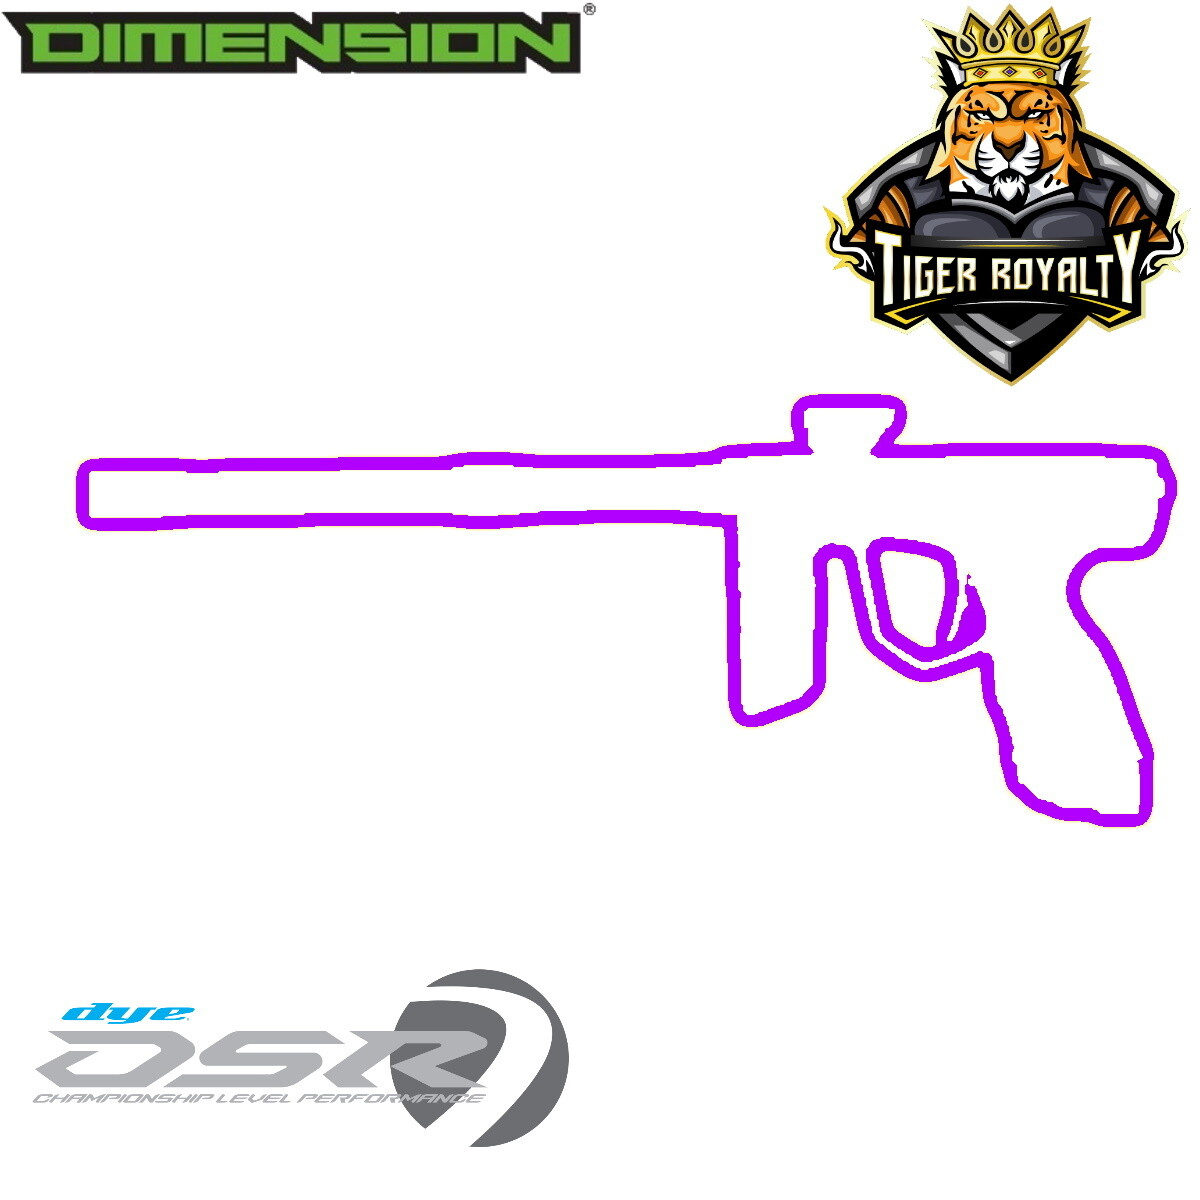 Dye DSR - Dimension Limited Edition 1 of 1 / Tiger Royalty - Reaper